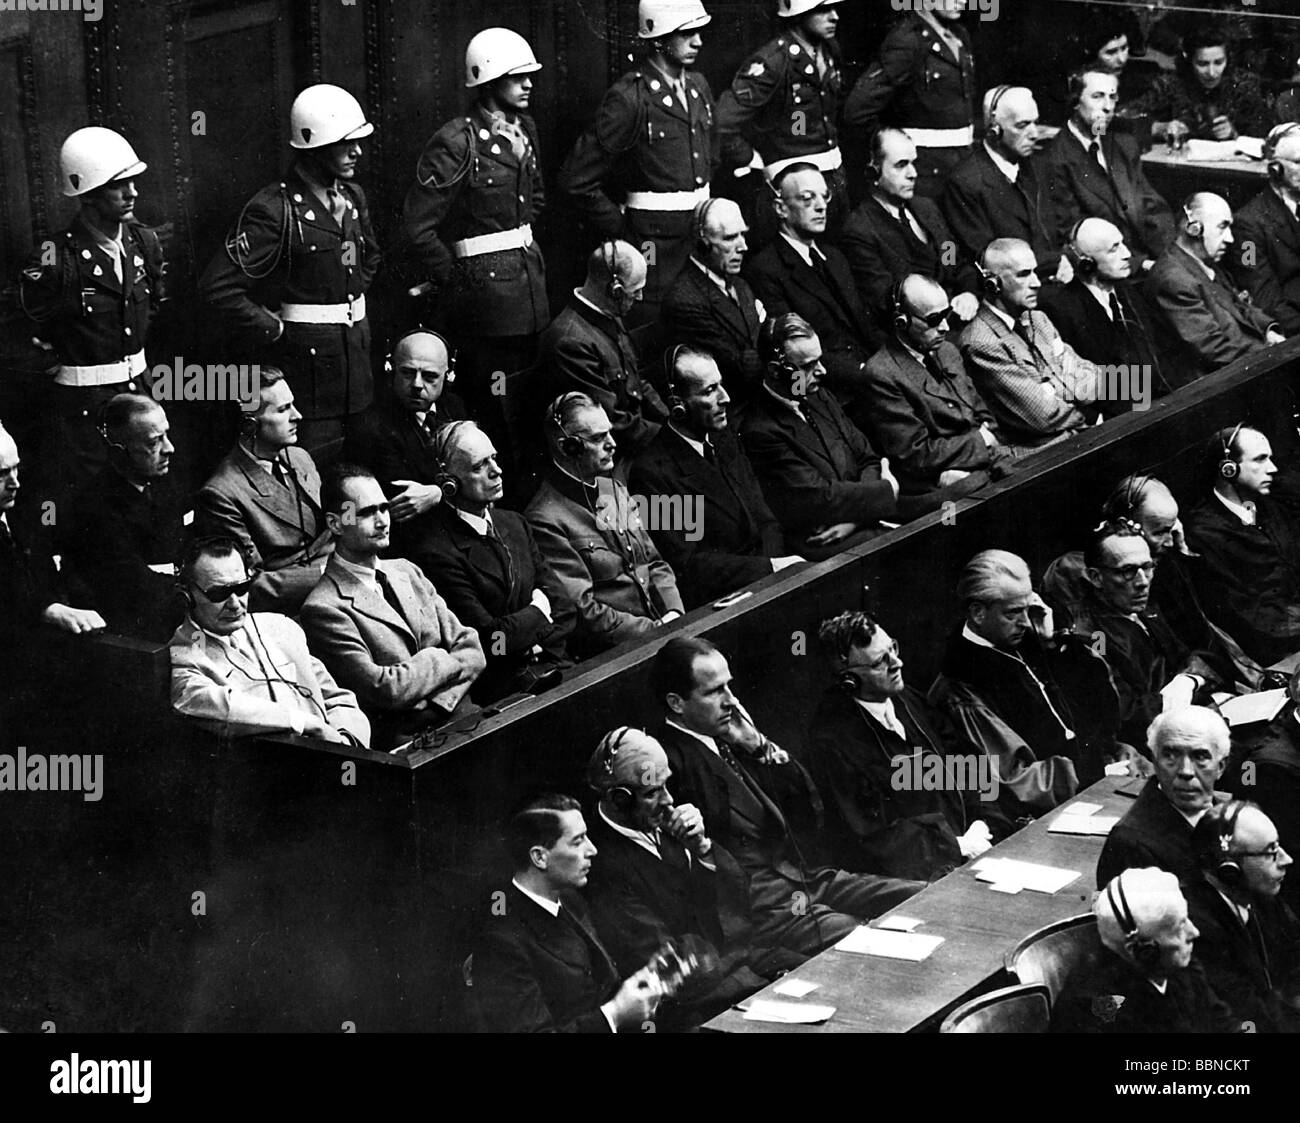 account of the nuremberg trial On 1 october 1946, the international military tribunal at nuremberg delivered its verdicts, after 216 court sessions of the original twenty-four defendants, twelve (including martin bormann, tried in absentia) were sentenced to death by hanging.